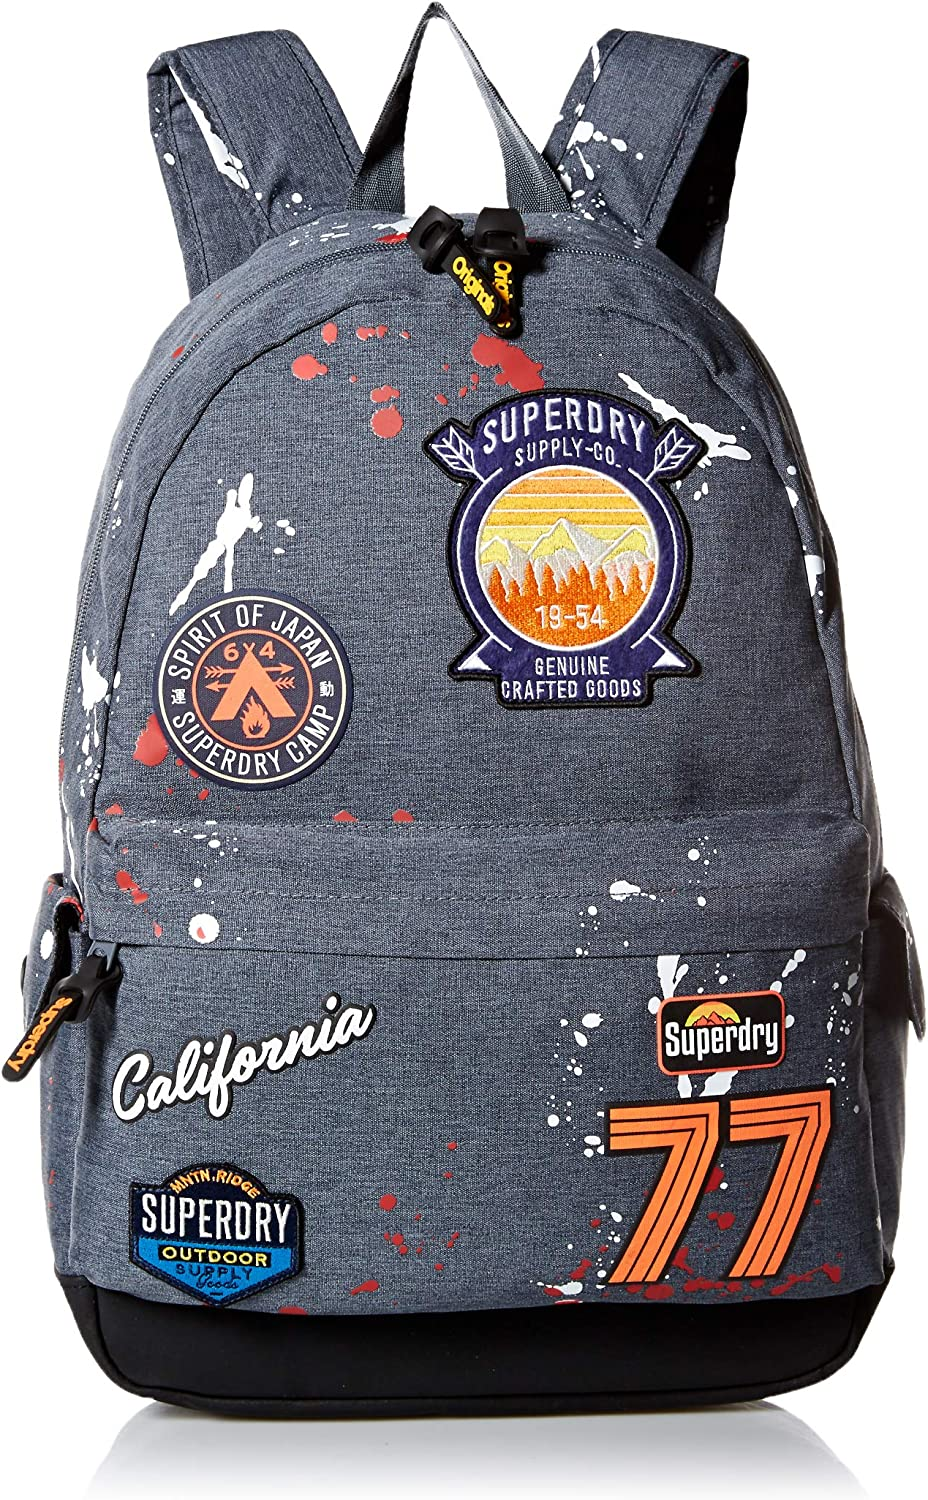 Superdry Accessories Outdoor Montana Backpack